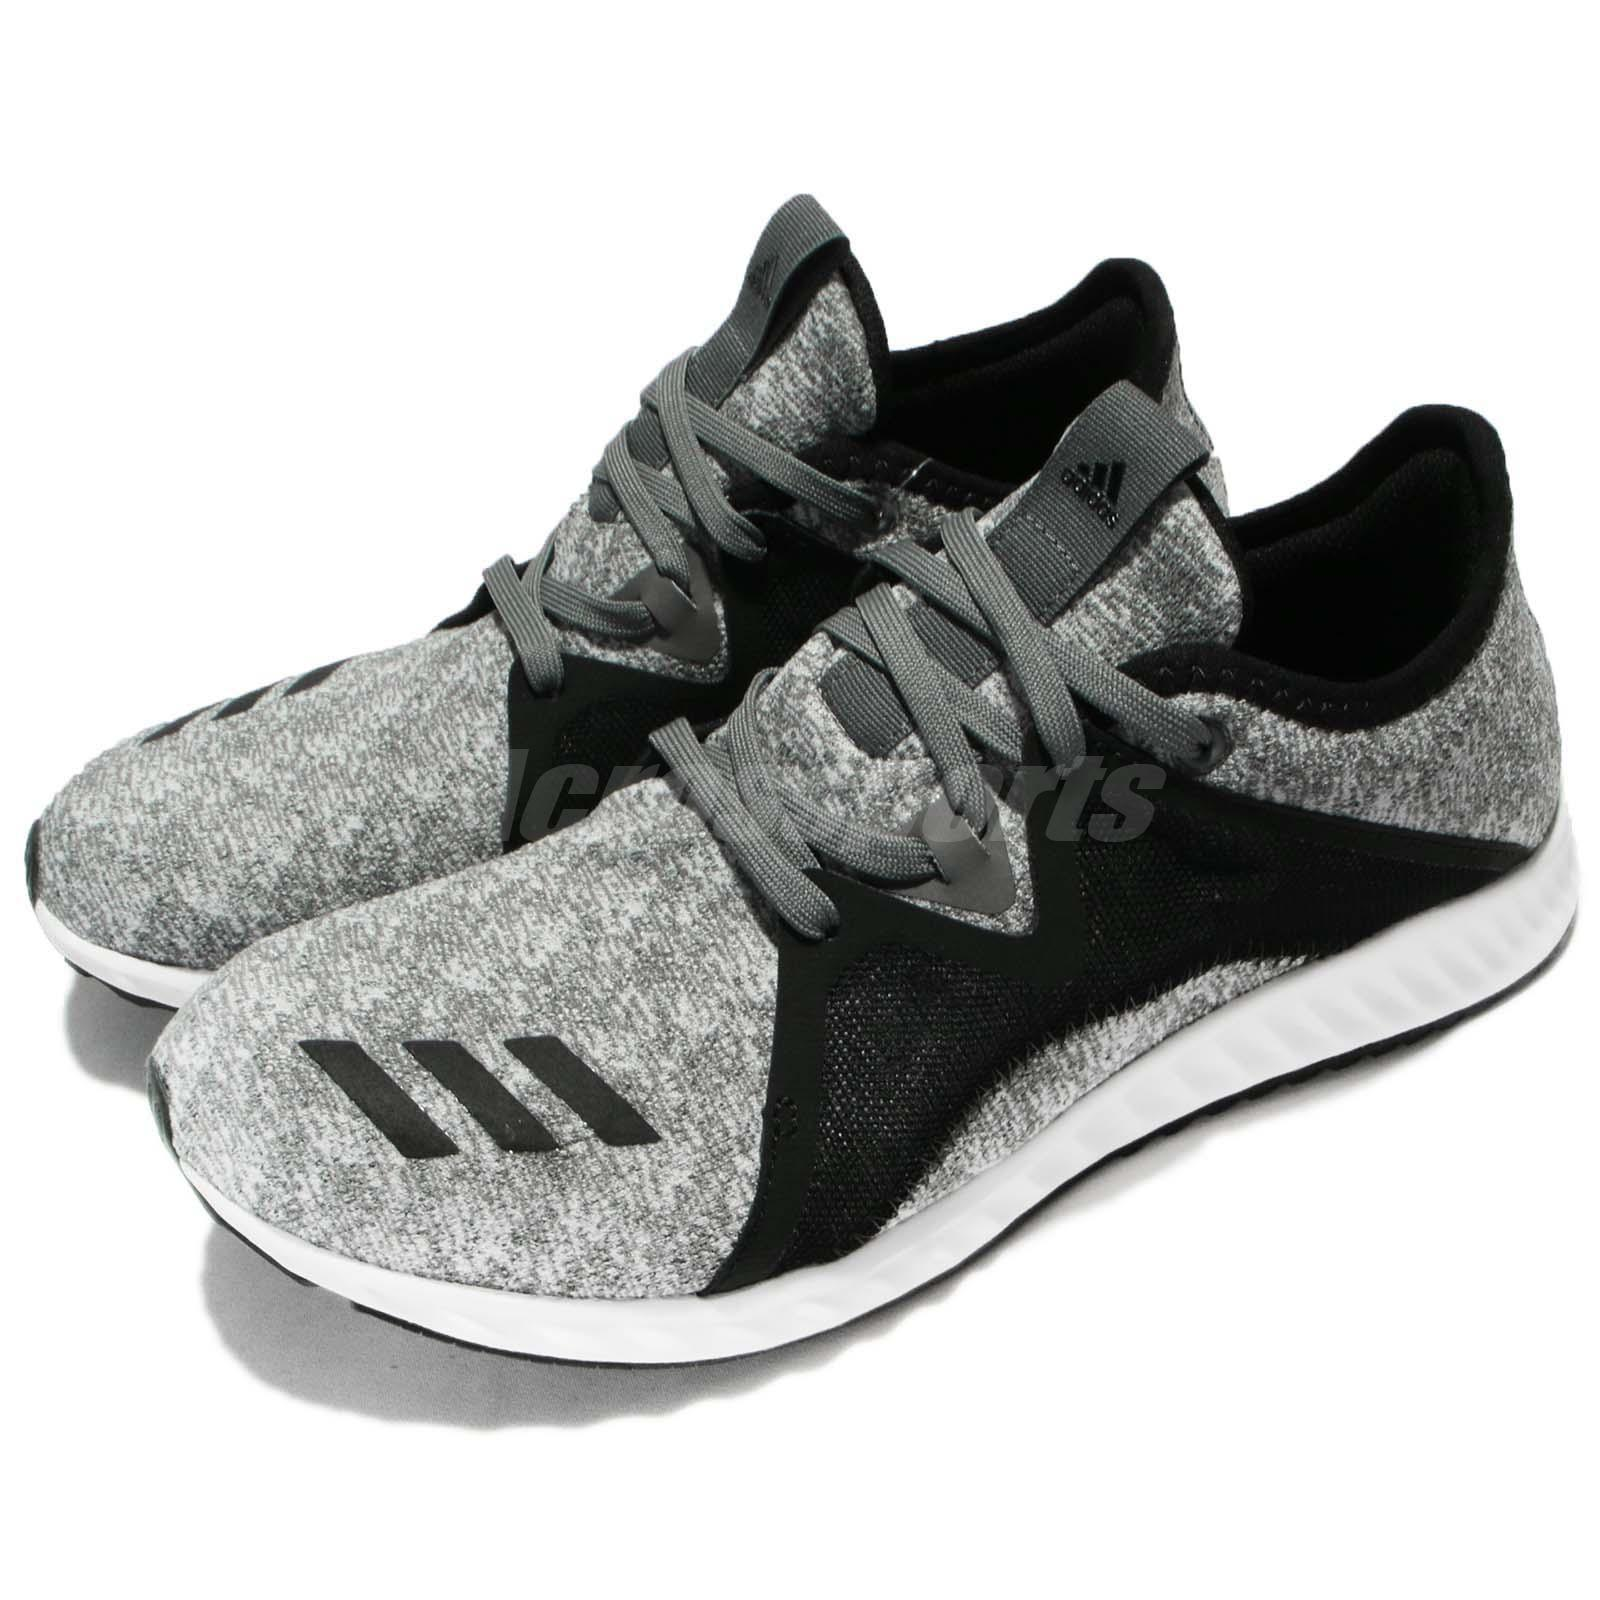 sale retailer 4610d e487f Details about adidas Edge Lux 2 W Grey Black White Women Running Training  Shoes Sneaker CG4708